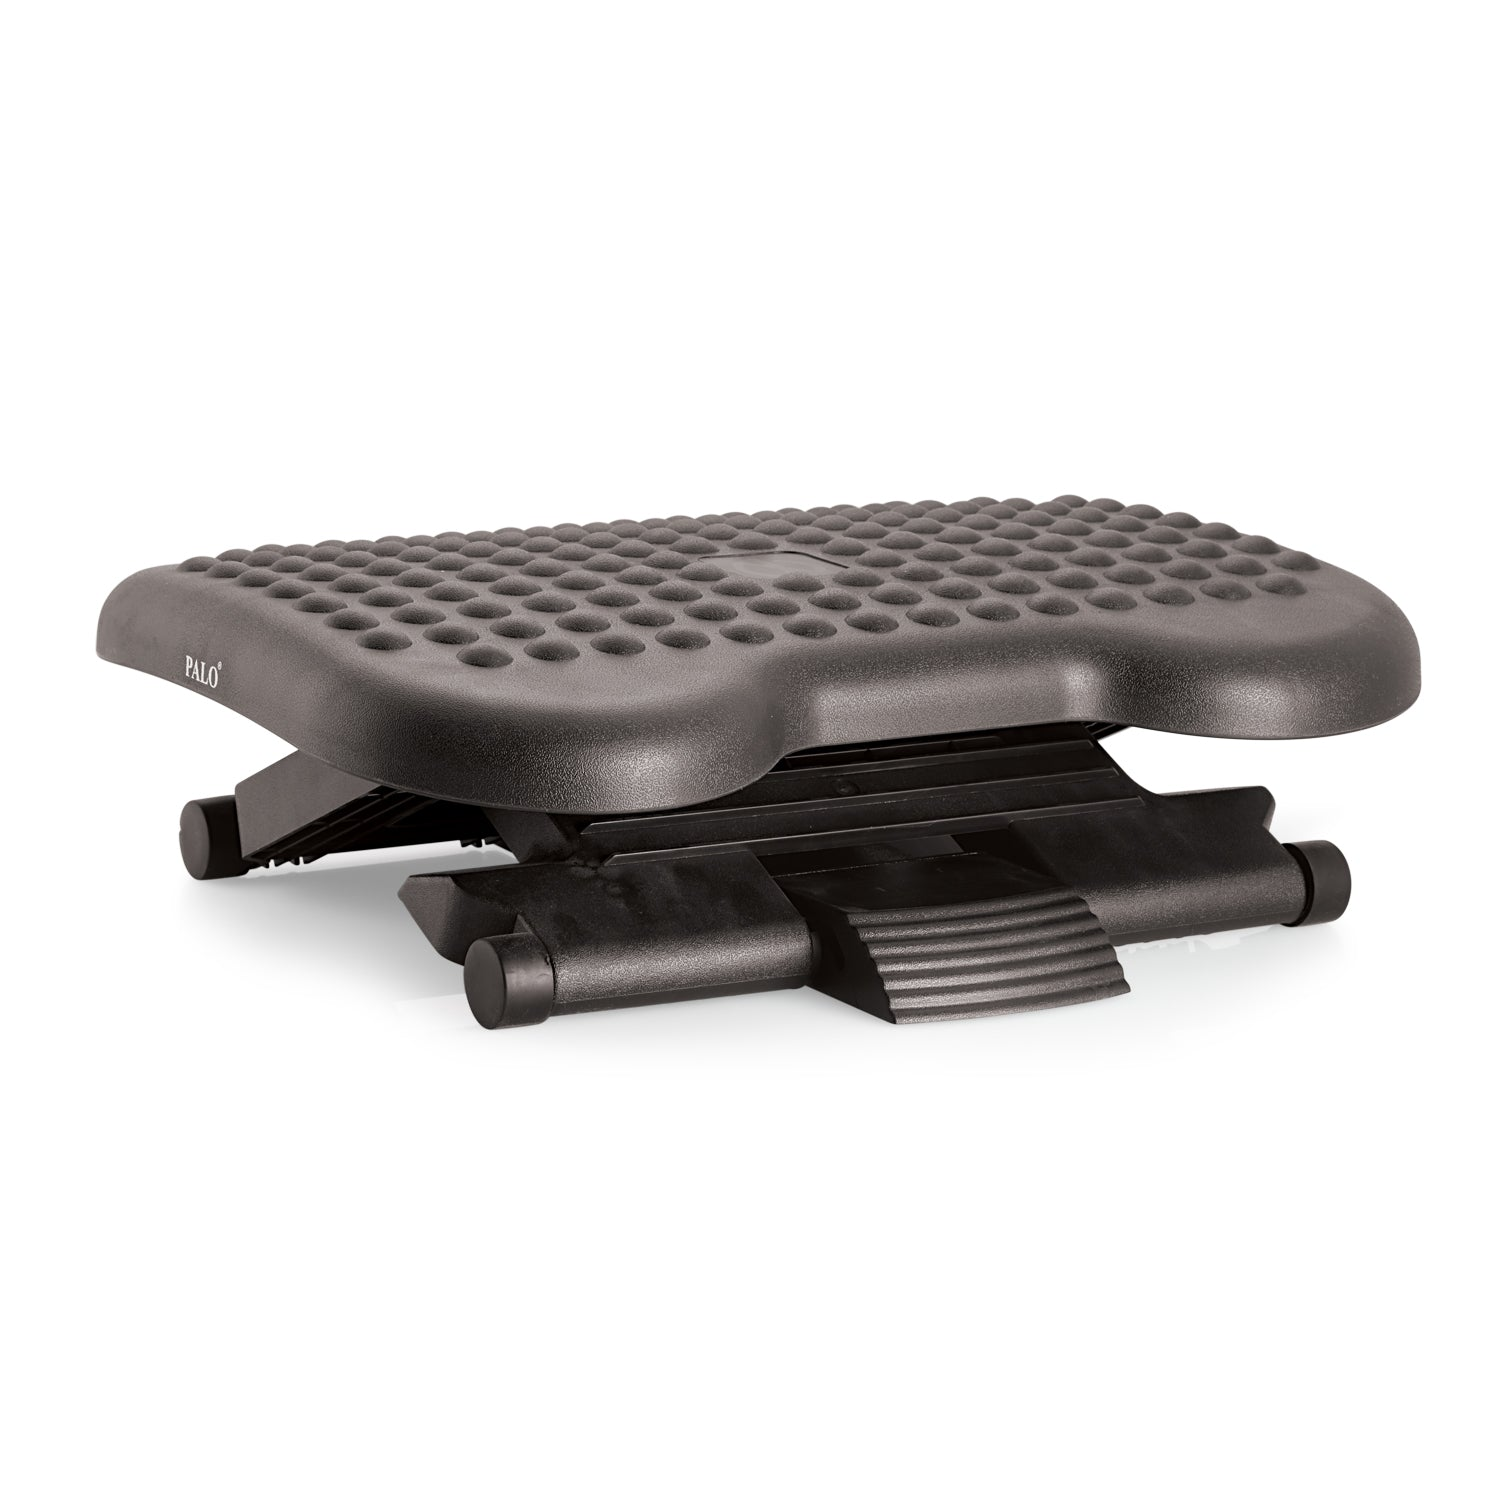 PALO010 Height Adjustable Footrest - With Bumps